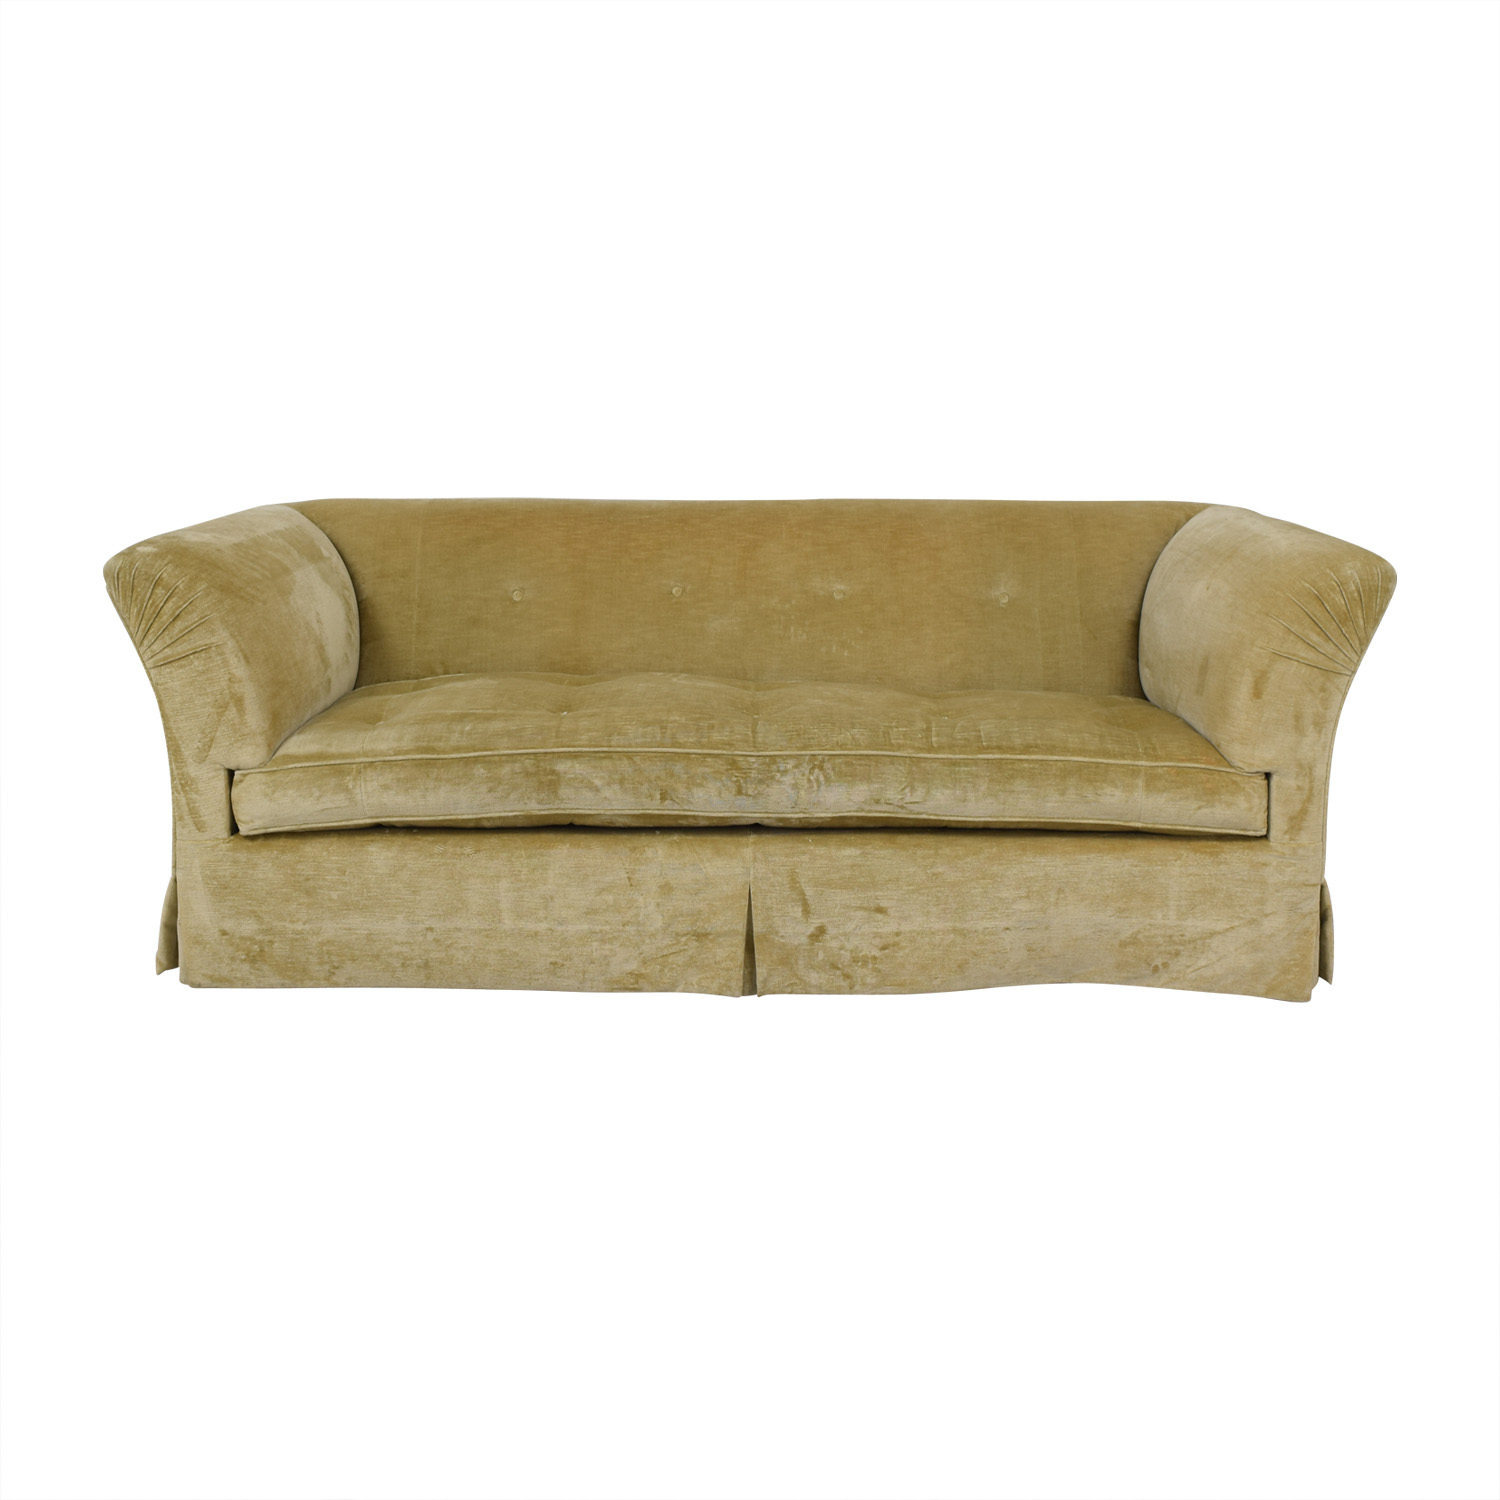 buy  Tufted Single Cushion Sofa online